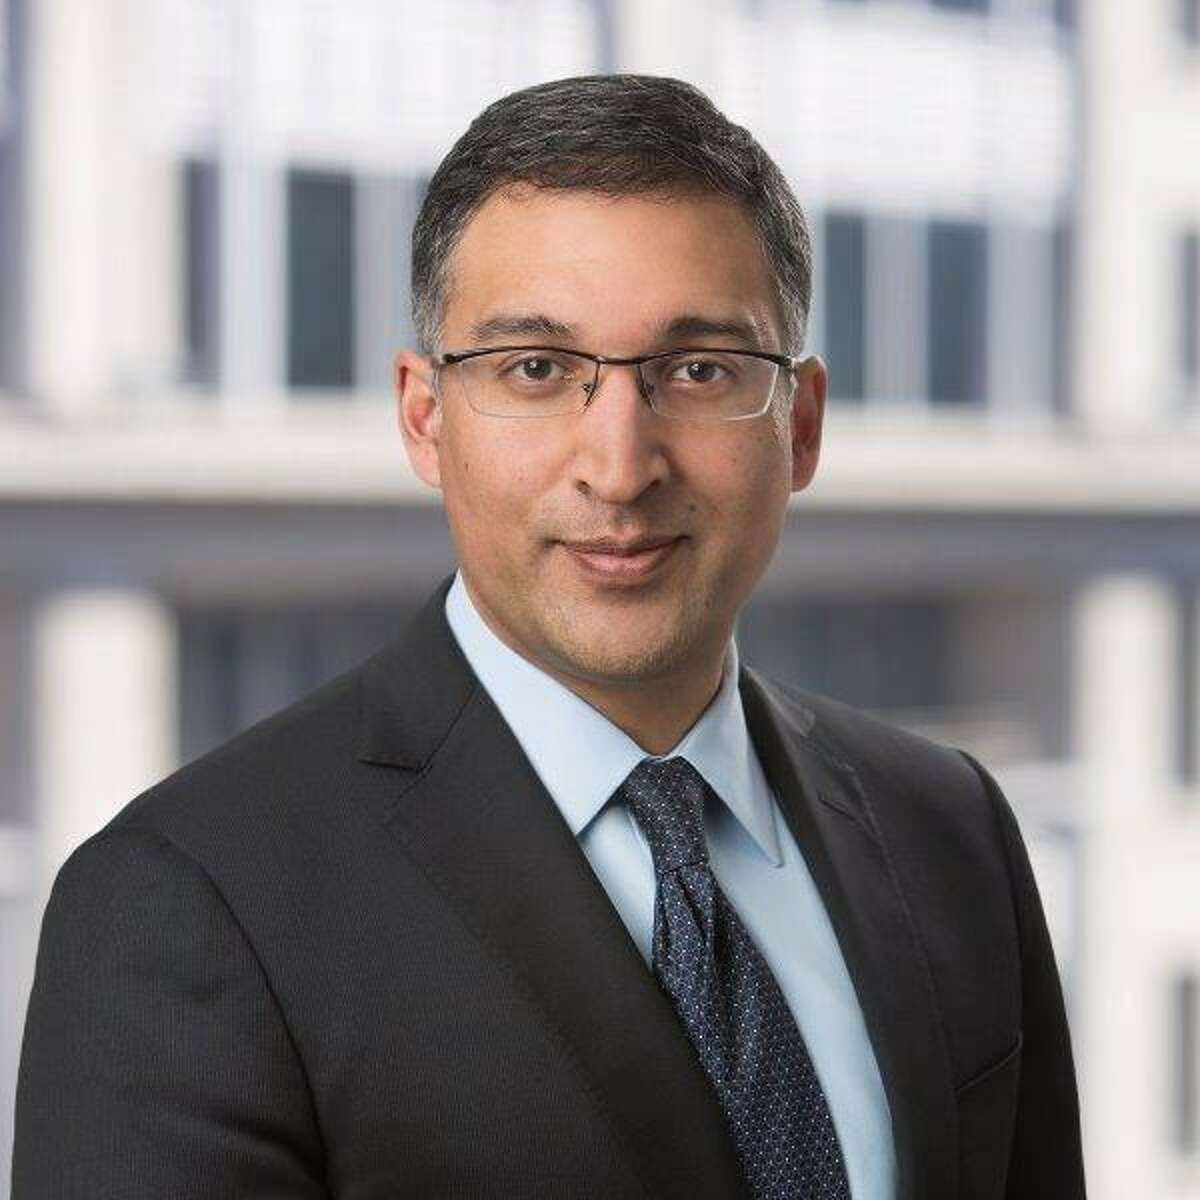 Former Principal Deputy Solicitor General Neal Katyal, a national security law professor at Georgetown University Law Center, will participate in the panel.